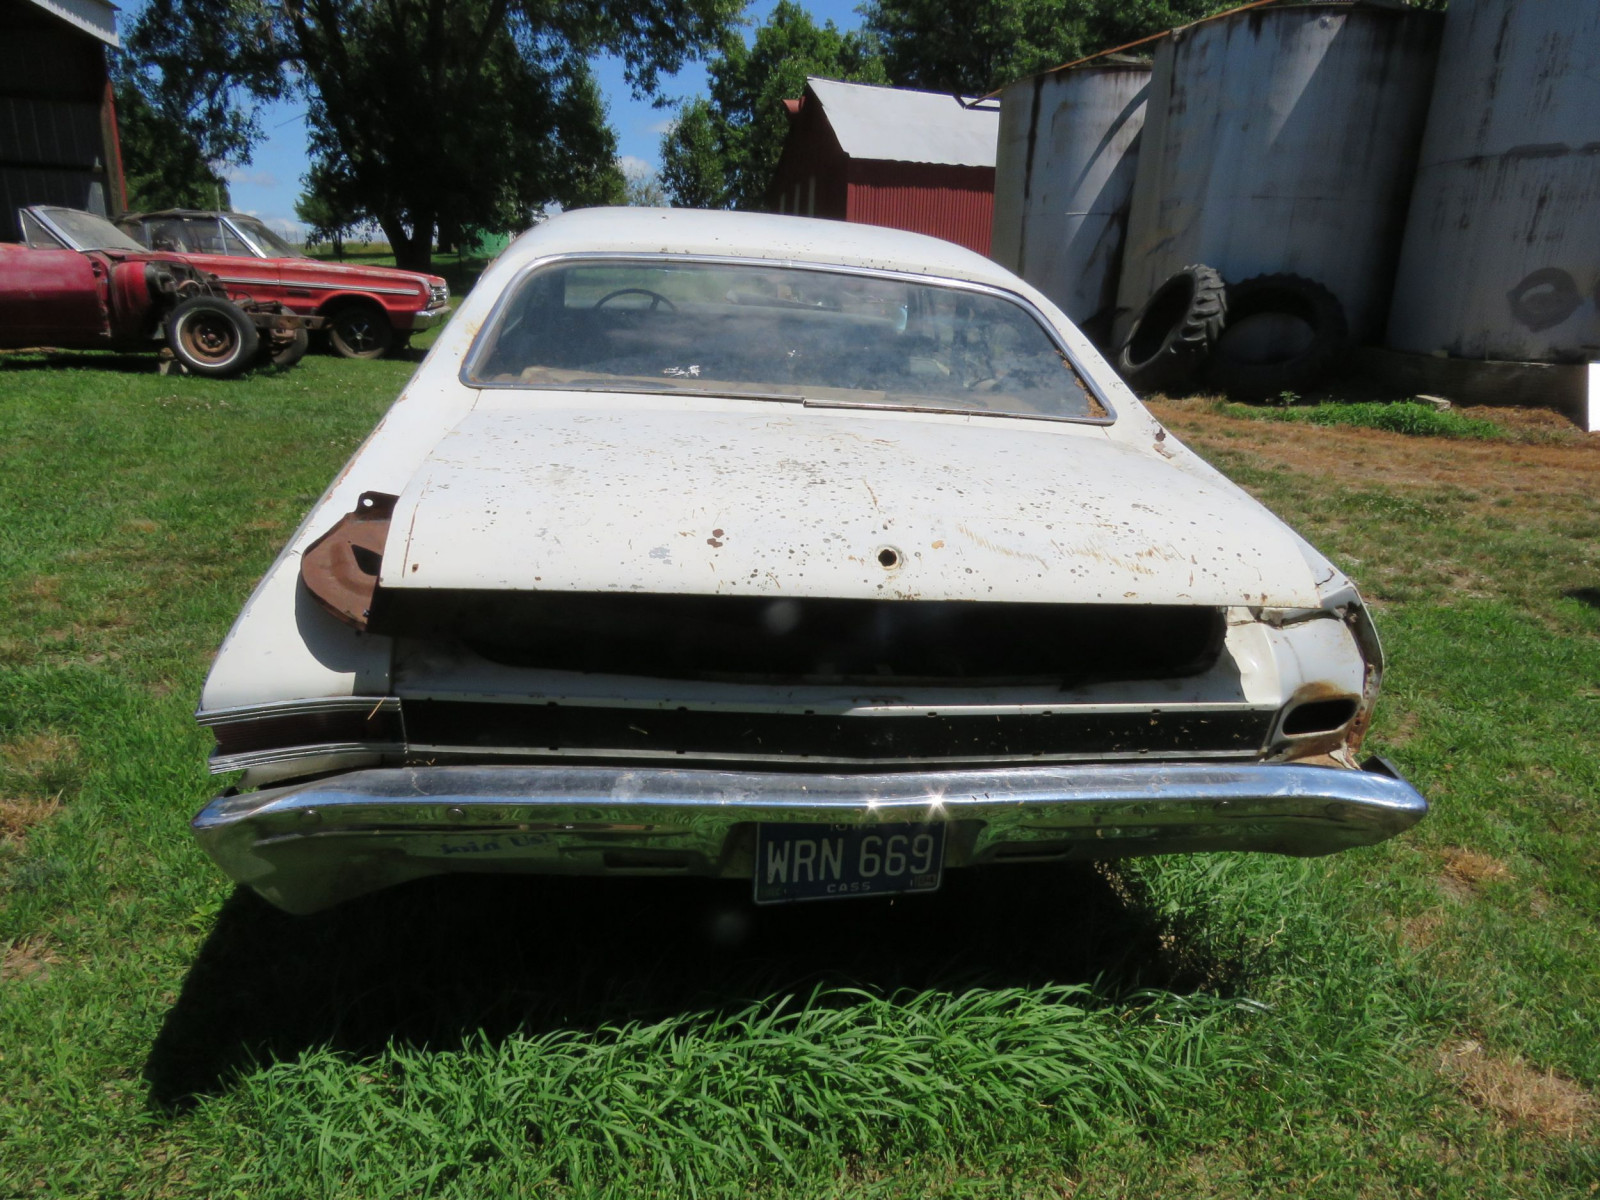 1968 Chevrolet Chevelle 2dr HT Project or Parts - Image 7